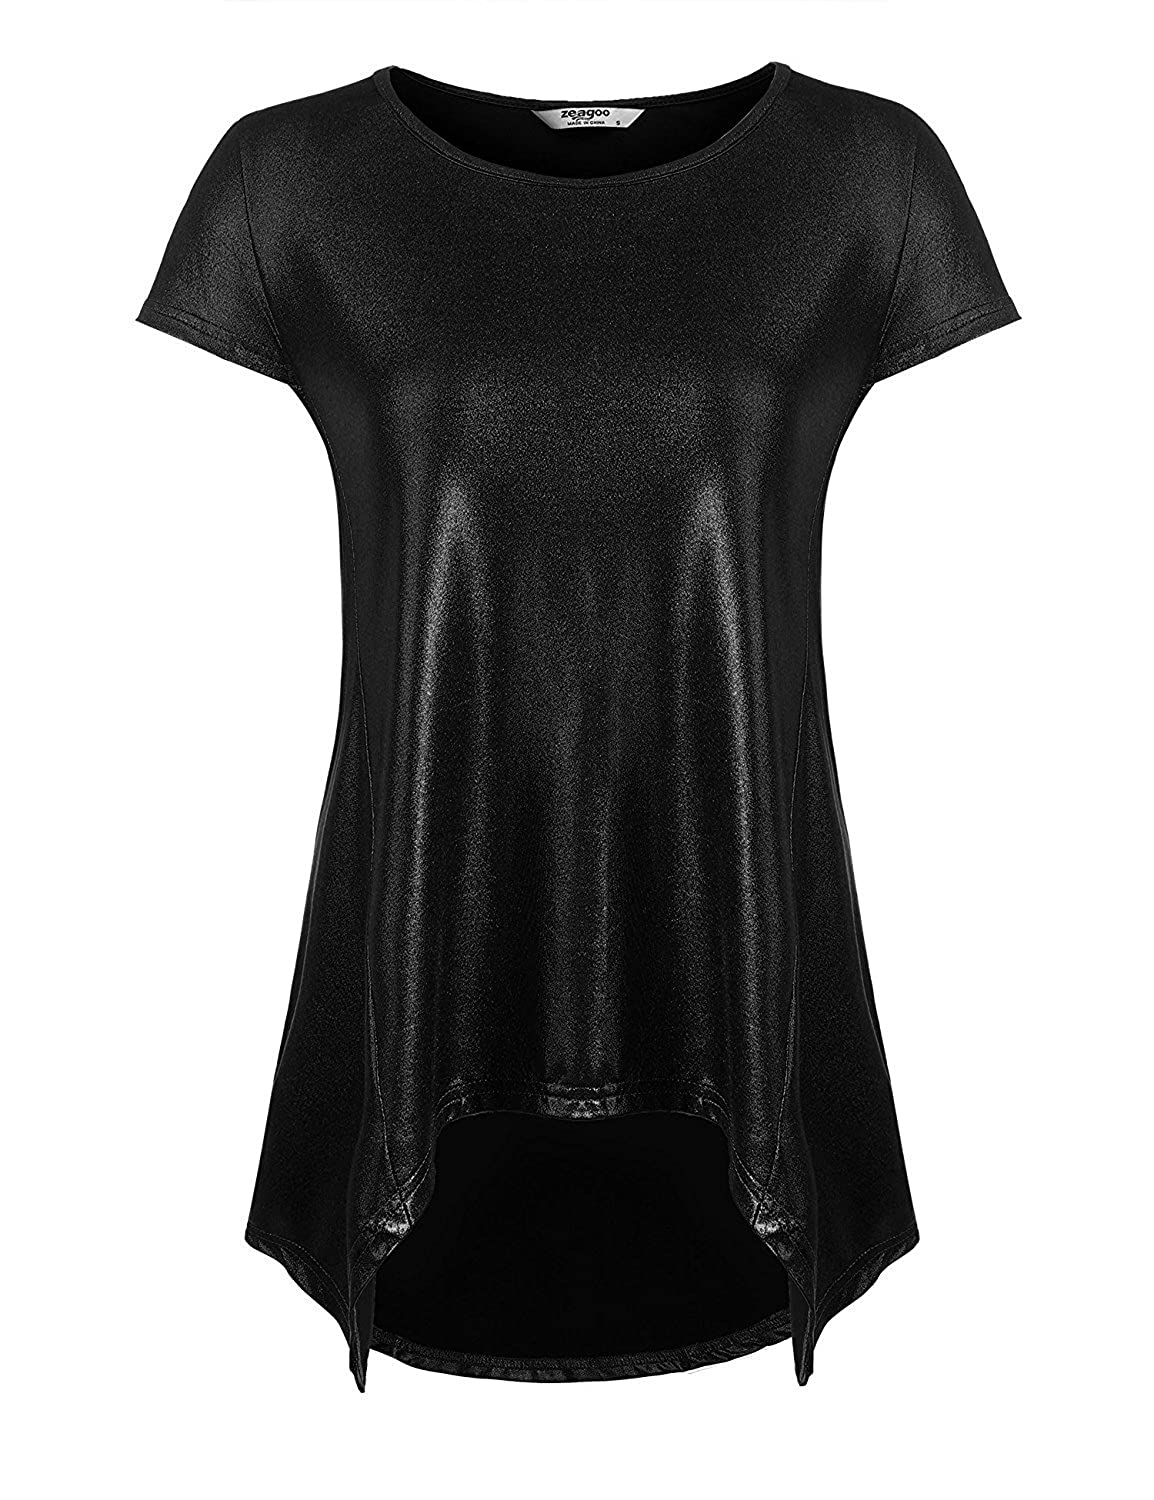 a01b1dd7443 Zeagoo Women's Short Sleeve Flare Tunic Casual Summer Loose Blouse Shirt,  Black, Medium at Amazon Women's Clothing store: